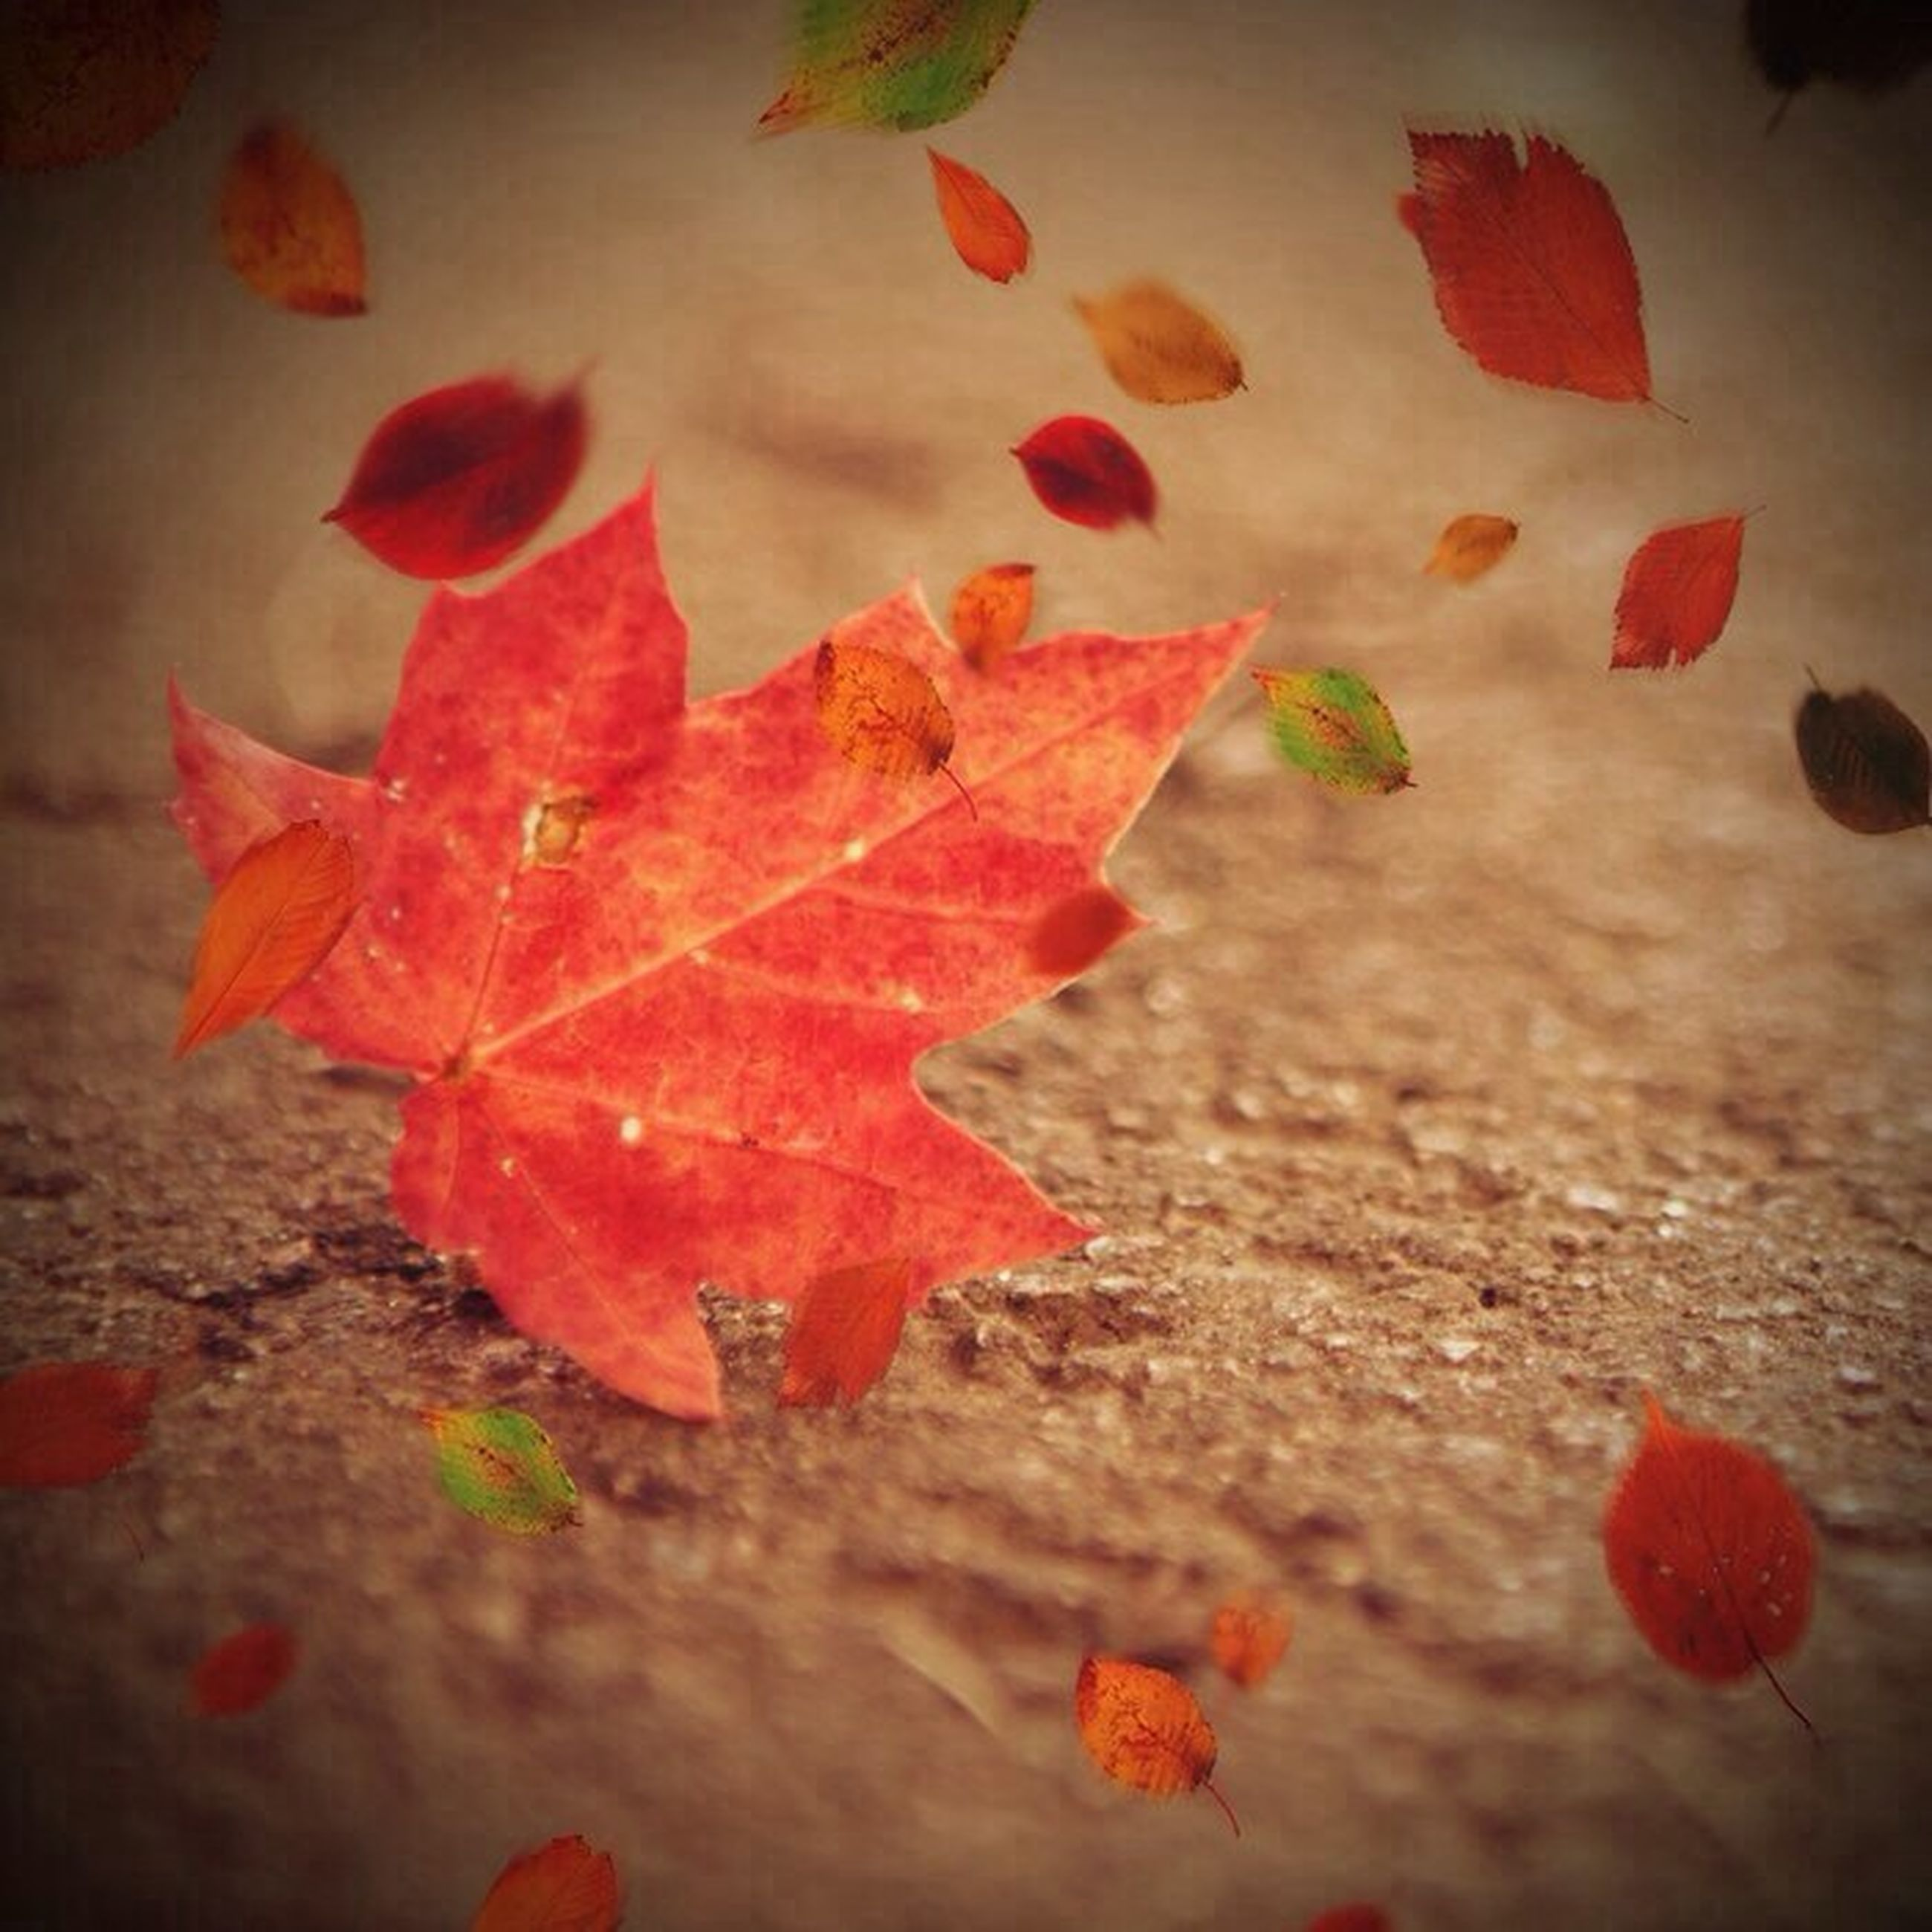 leaf, autumn, change, red, leaves, season, maple leaf, fallen, orange color, dry, nature, close-up, leaf vein, high angle view, water, beauty in nature, no people, wet, outdoors, day